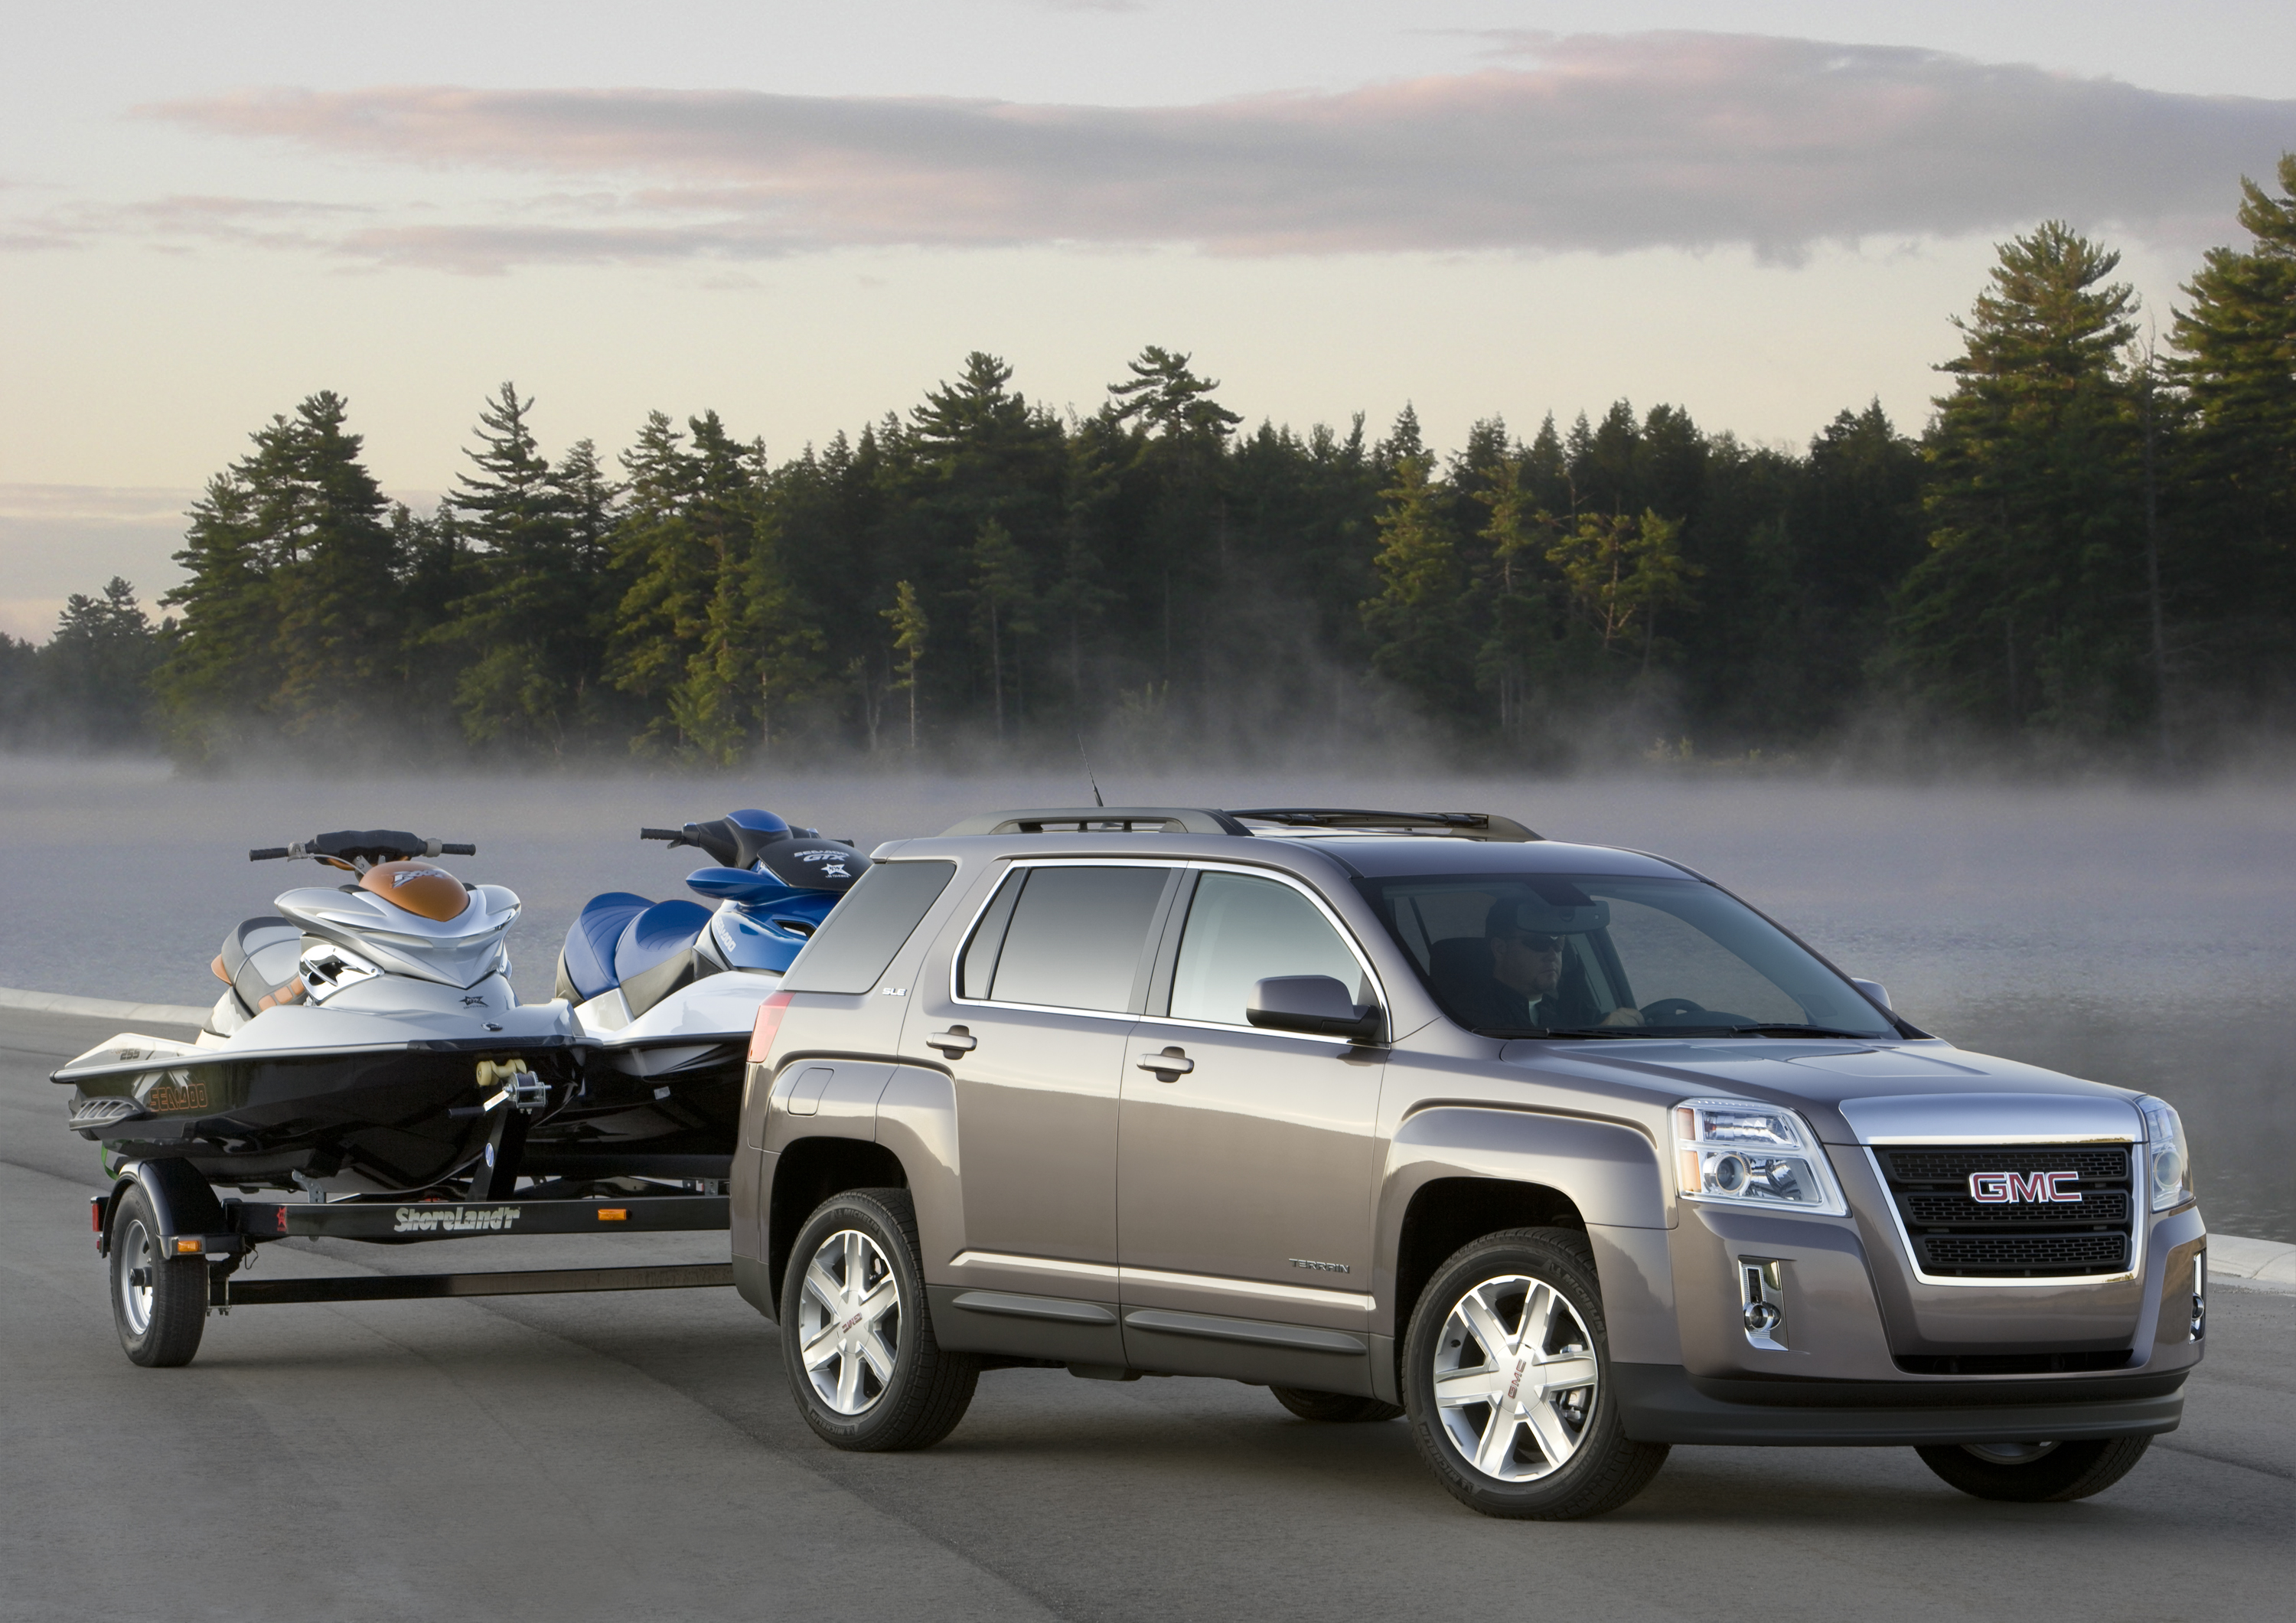 Gmc Acadia Towing Capacity >> Towing Skills Can T Be Swayed On Gmc Crossovers